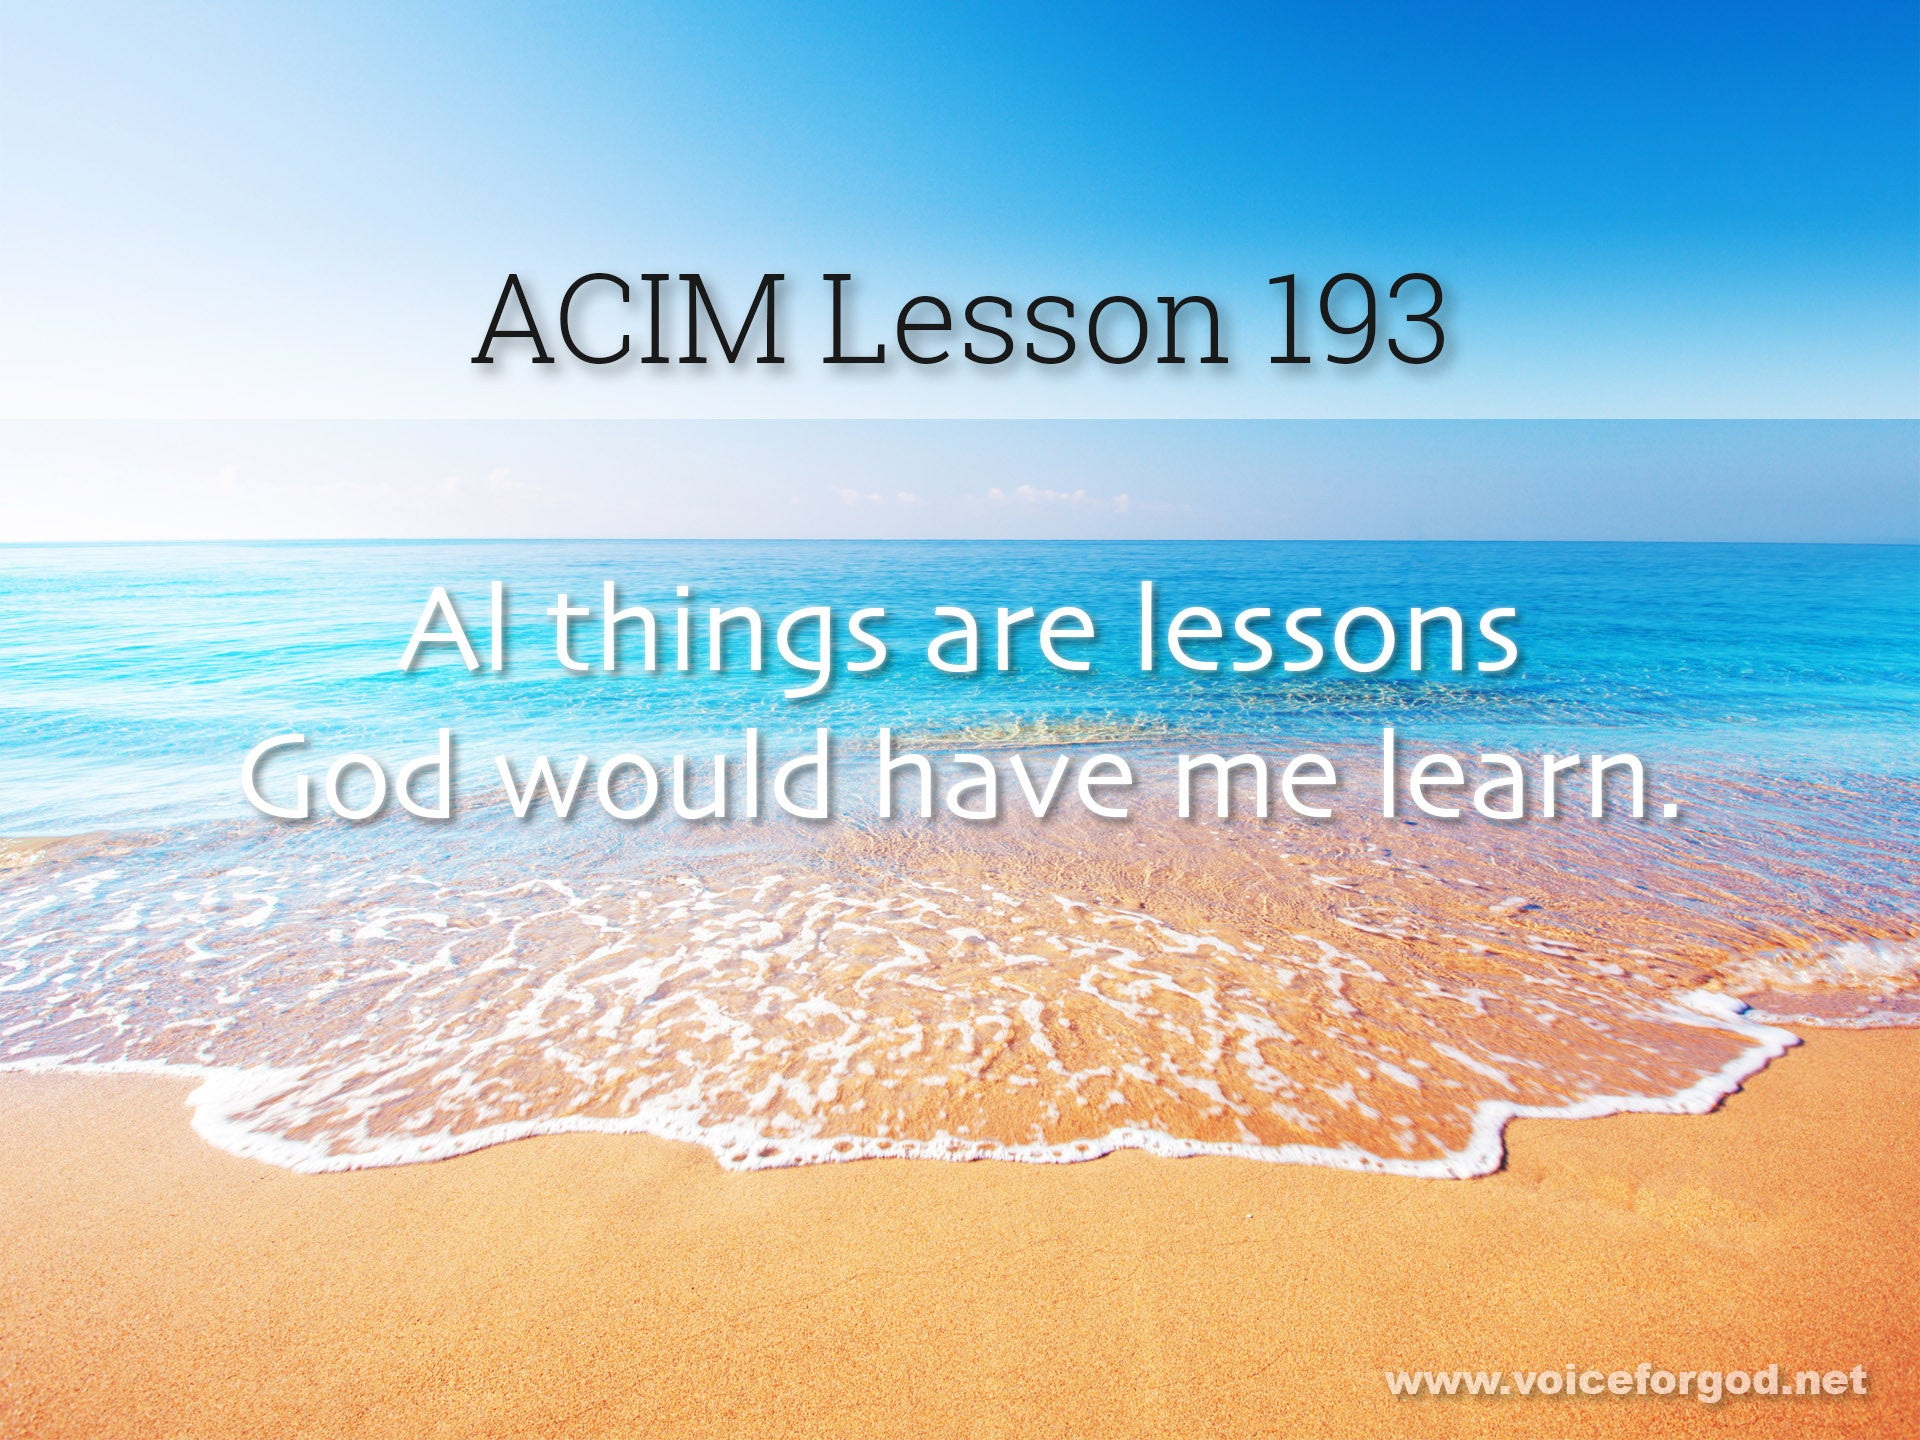 ACIM Lesson 193 - A Course in Miracles Workbook Lesson 193